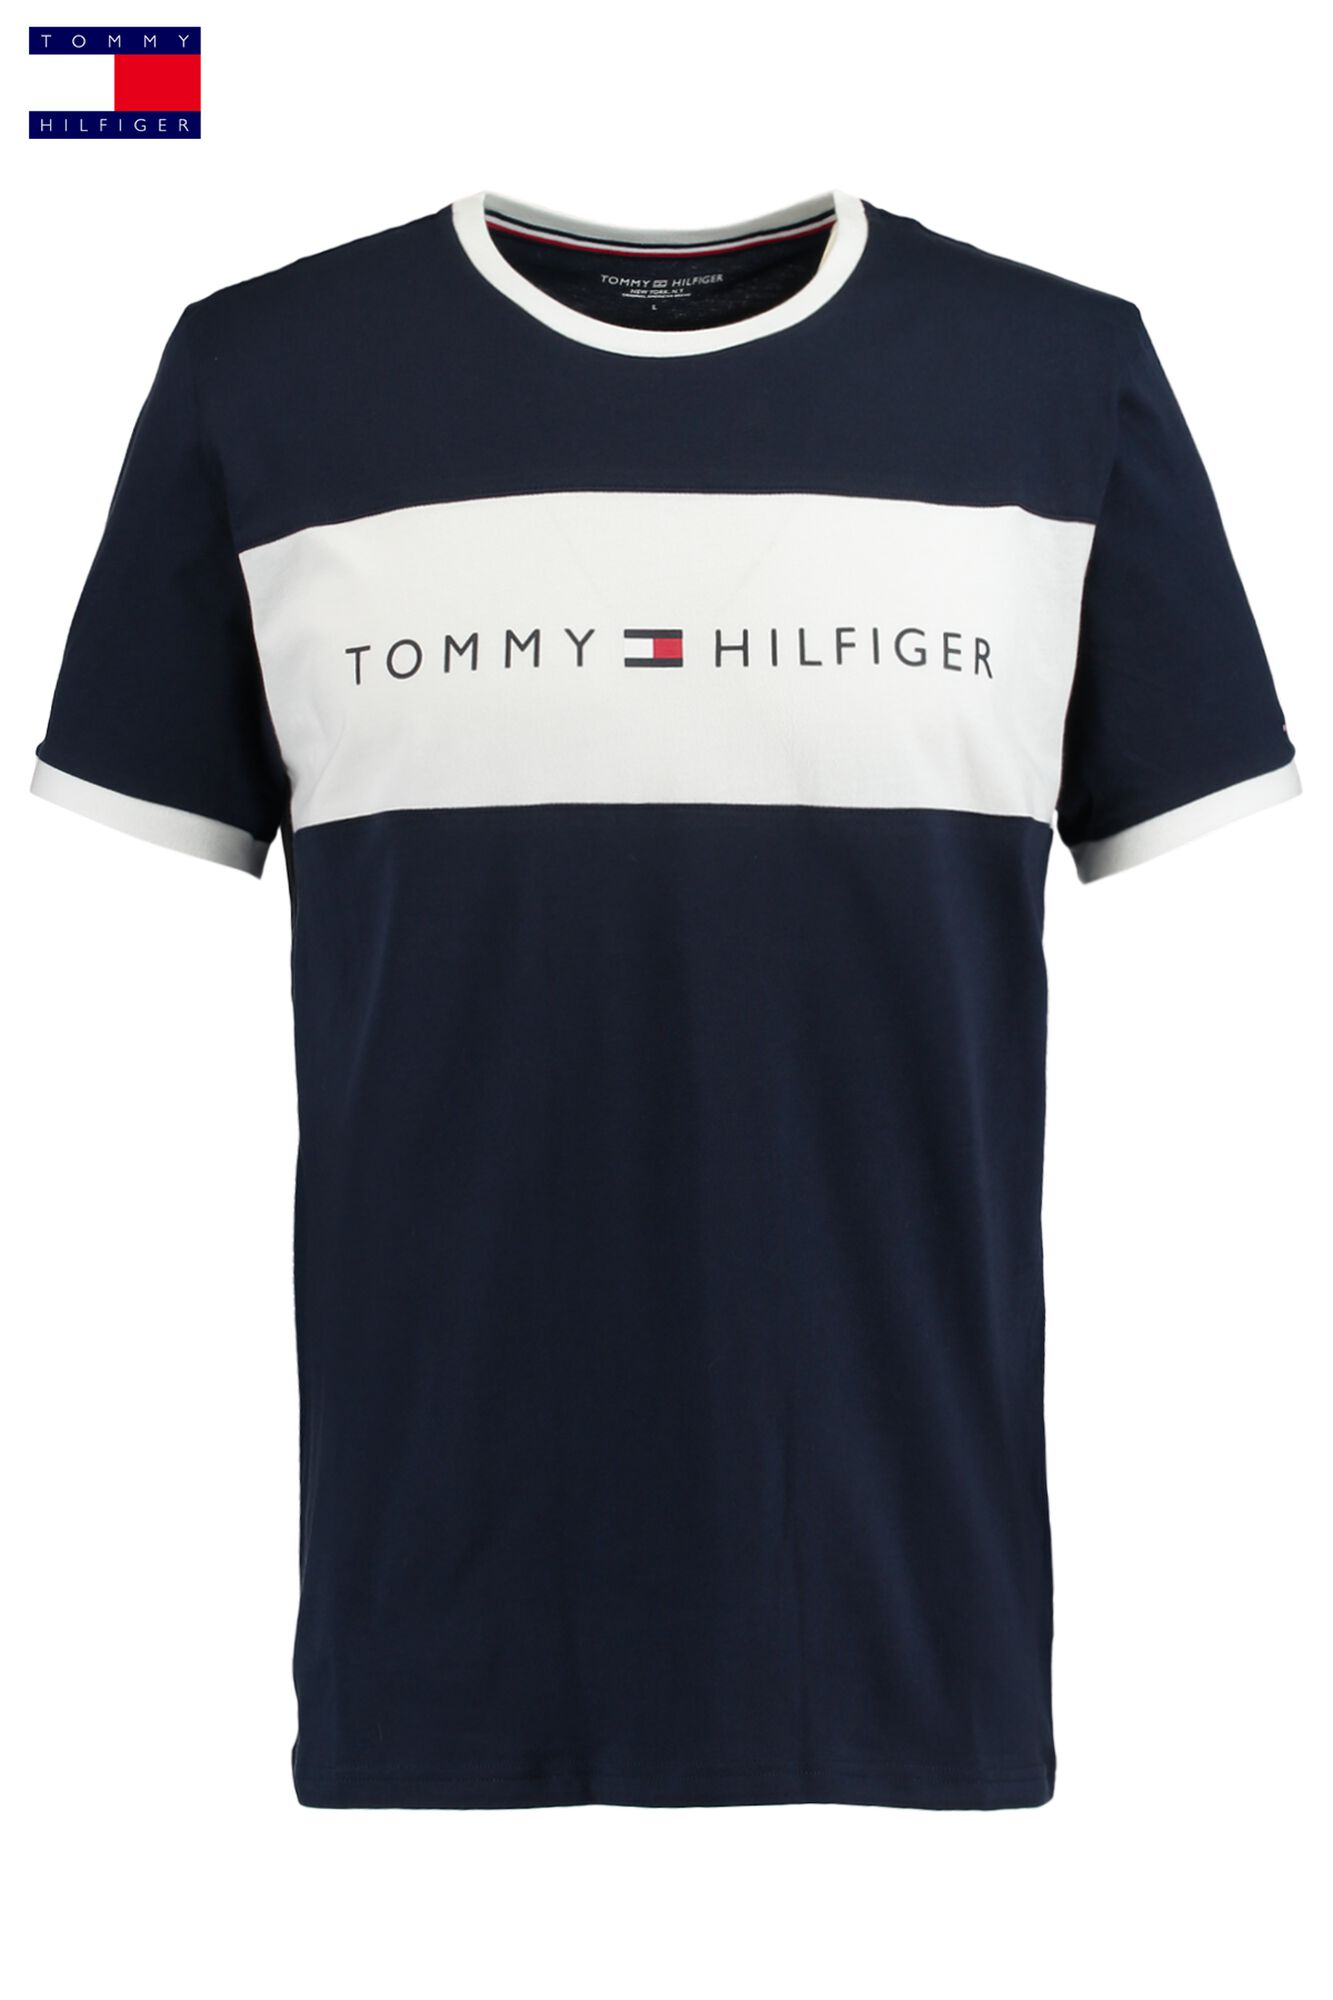 02215a1b4 Men T-shirt Tommy Hilfiger Logo Blue Buy Online